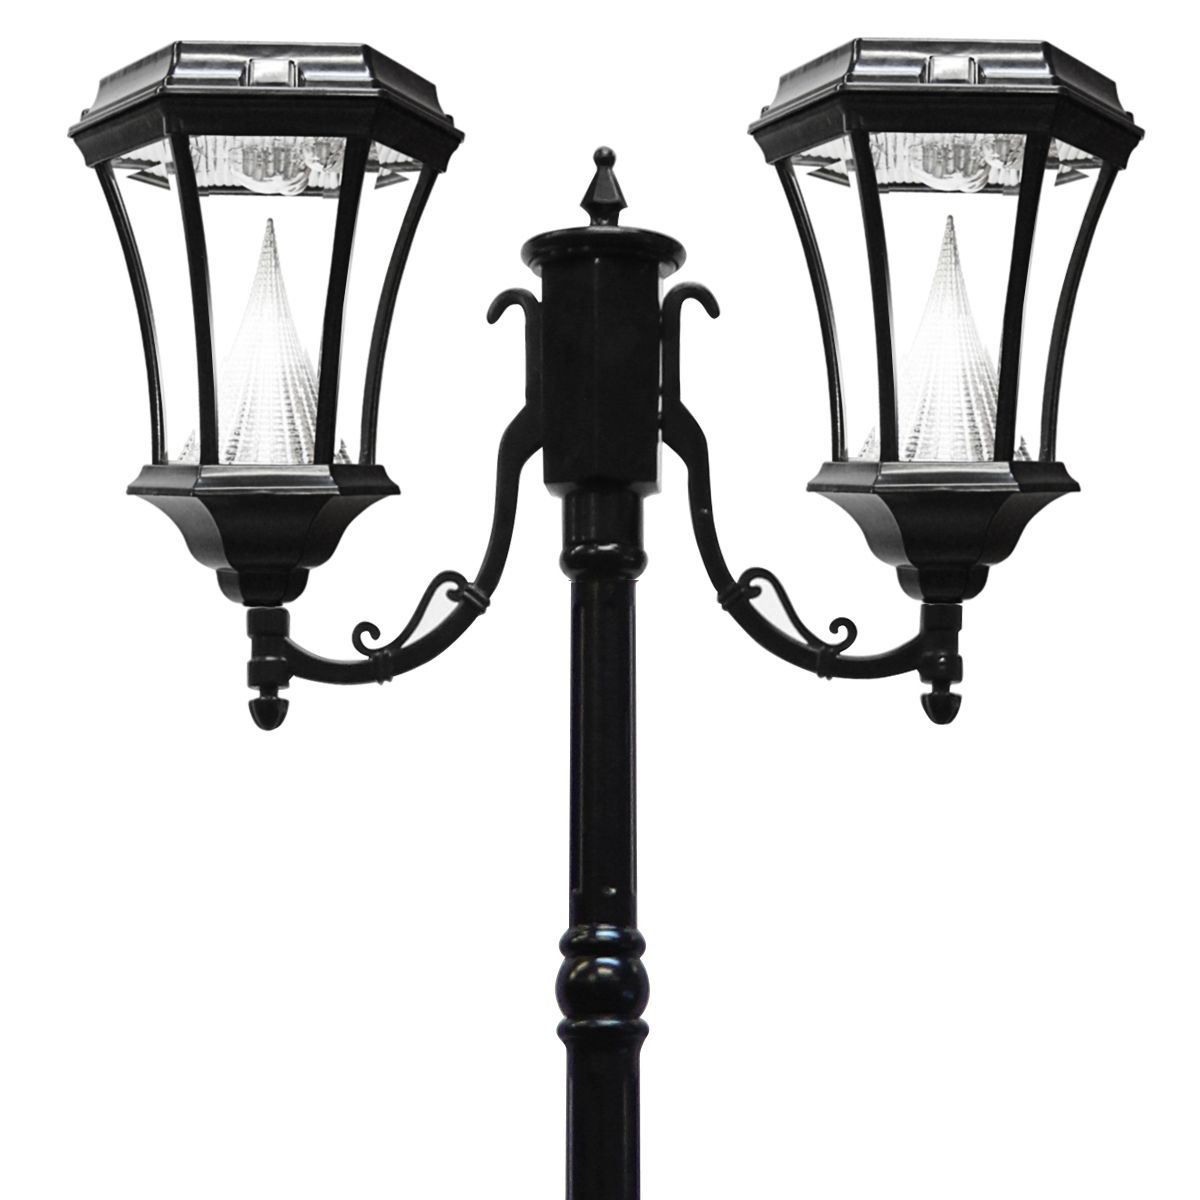 The gama sonic gs 94d 7 foot high solar powered traditional styled look at this black solar led victorian two light lantern post mozeypictures Gallery